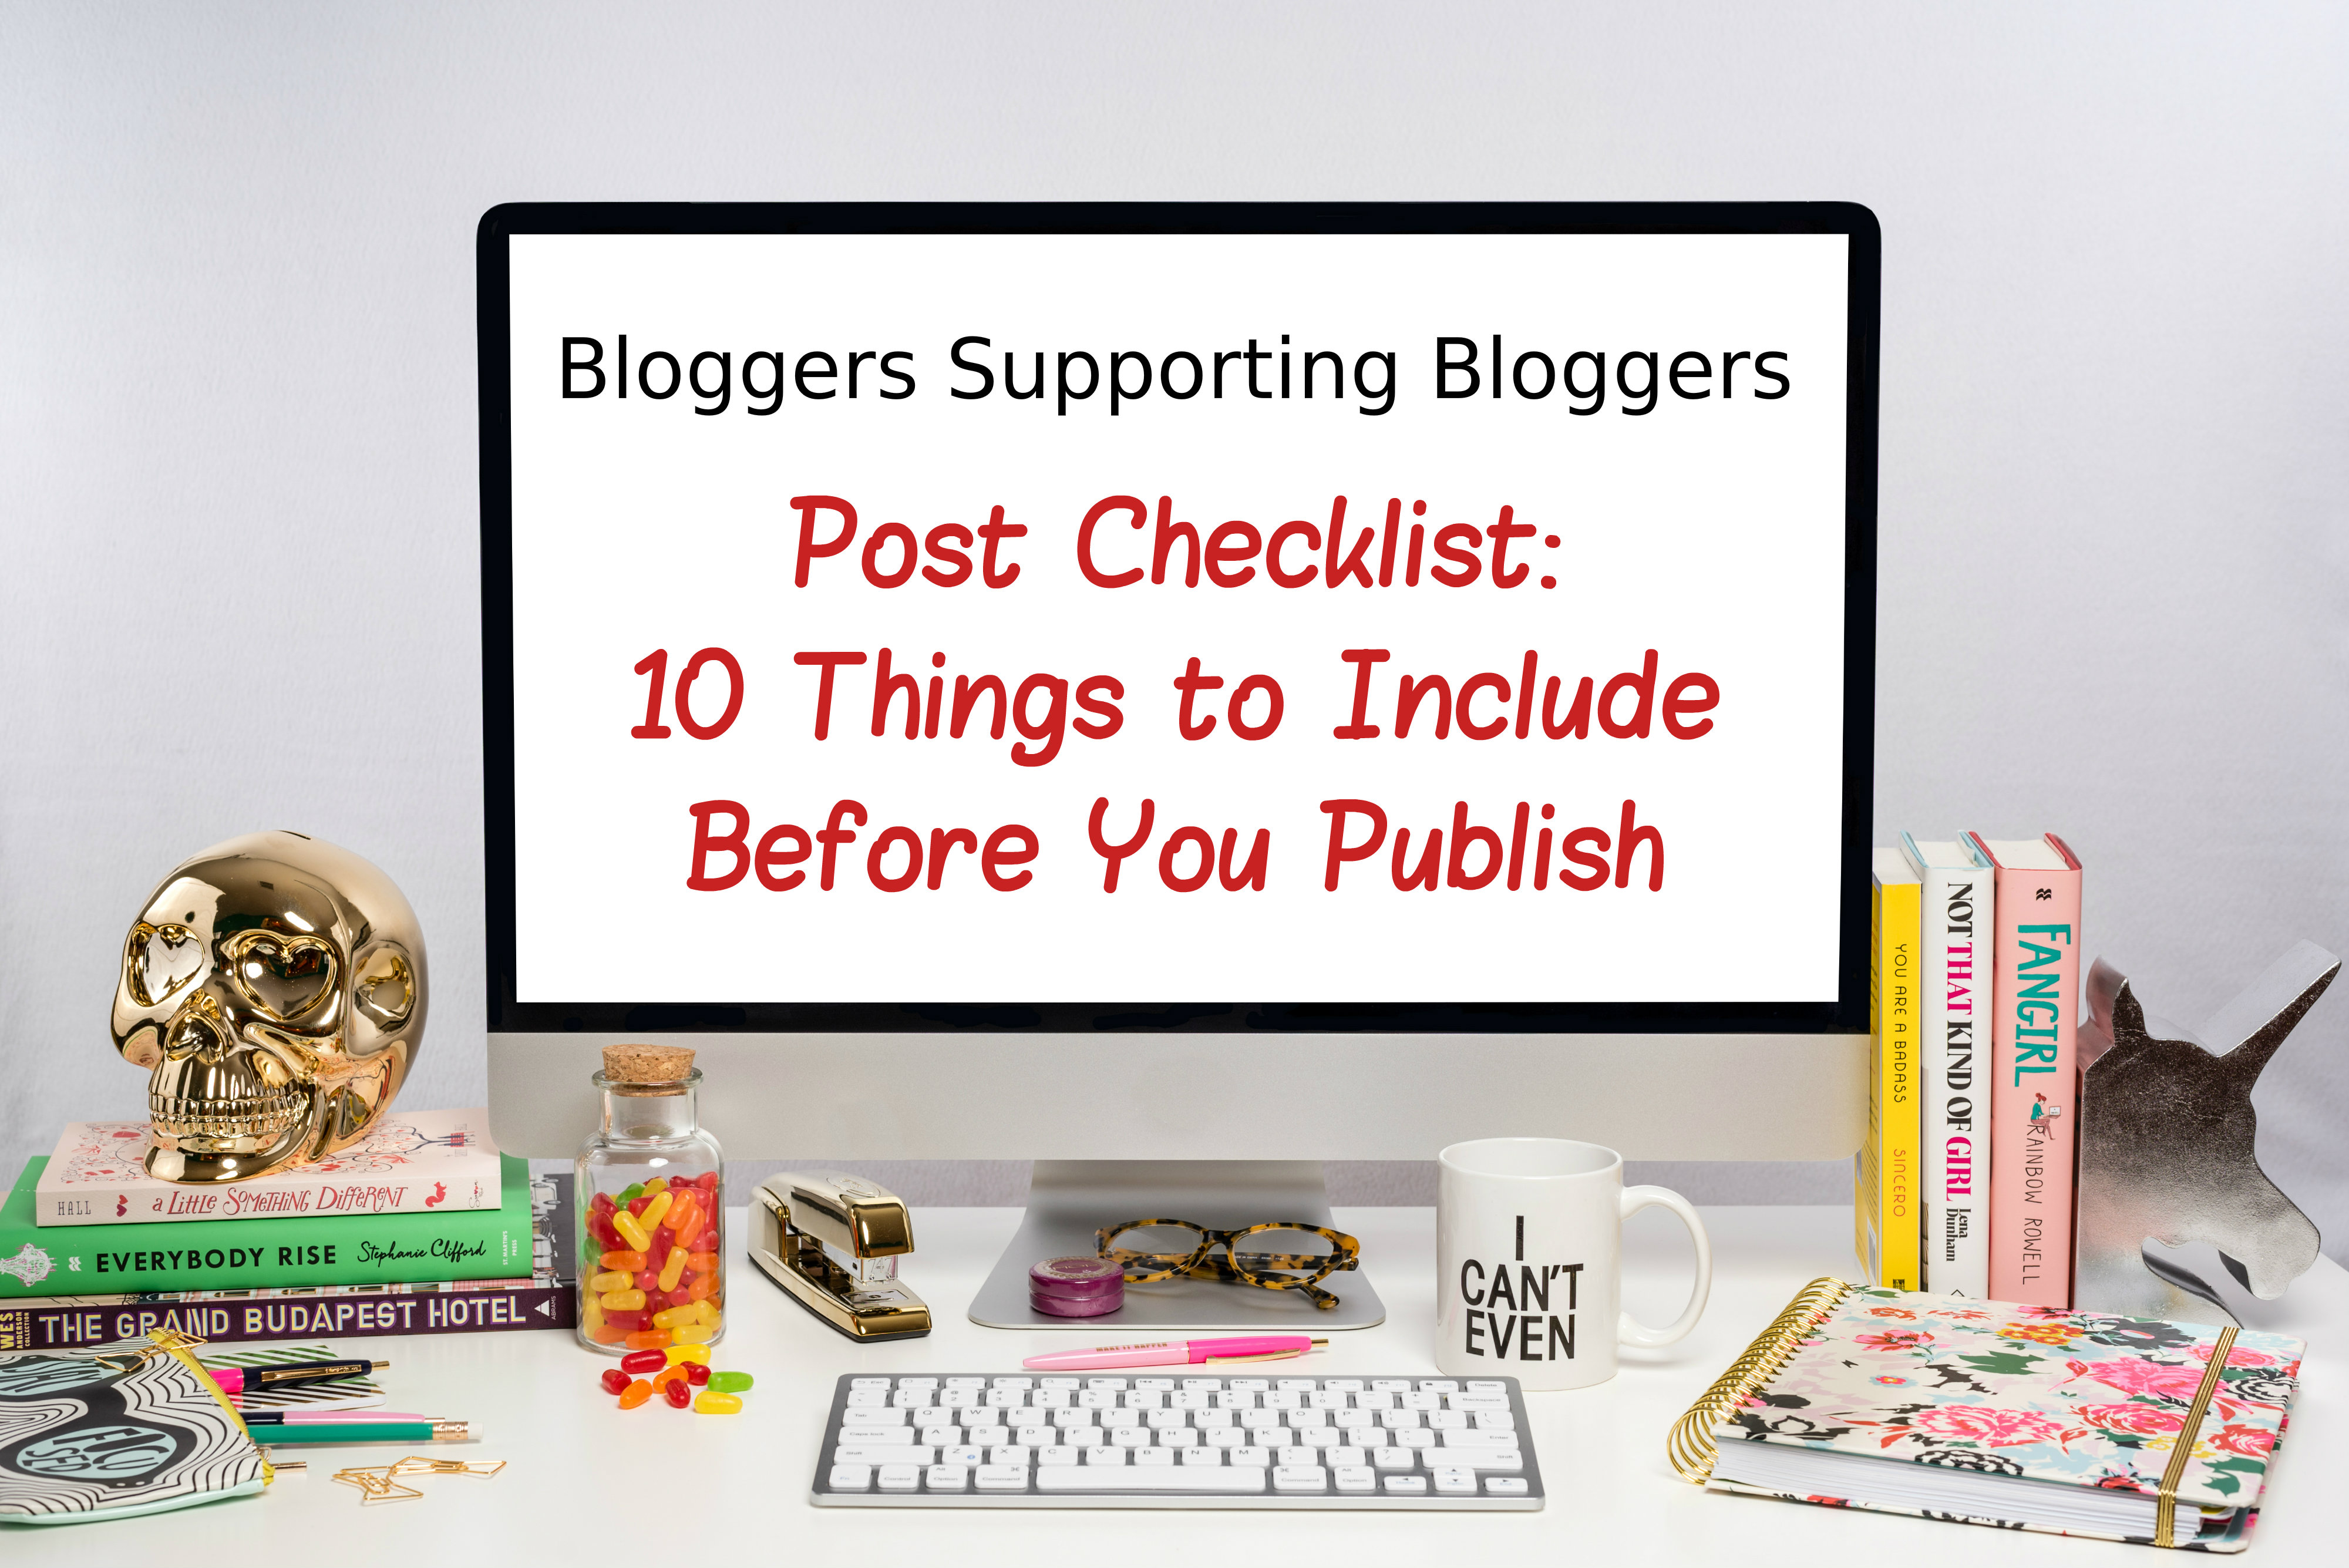 Blog Post Checklist: 10 Things to Include Before You Publish